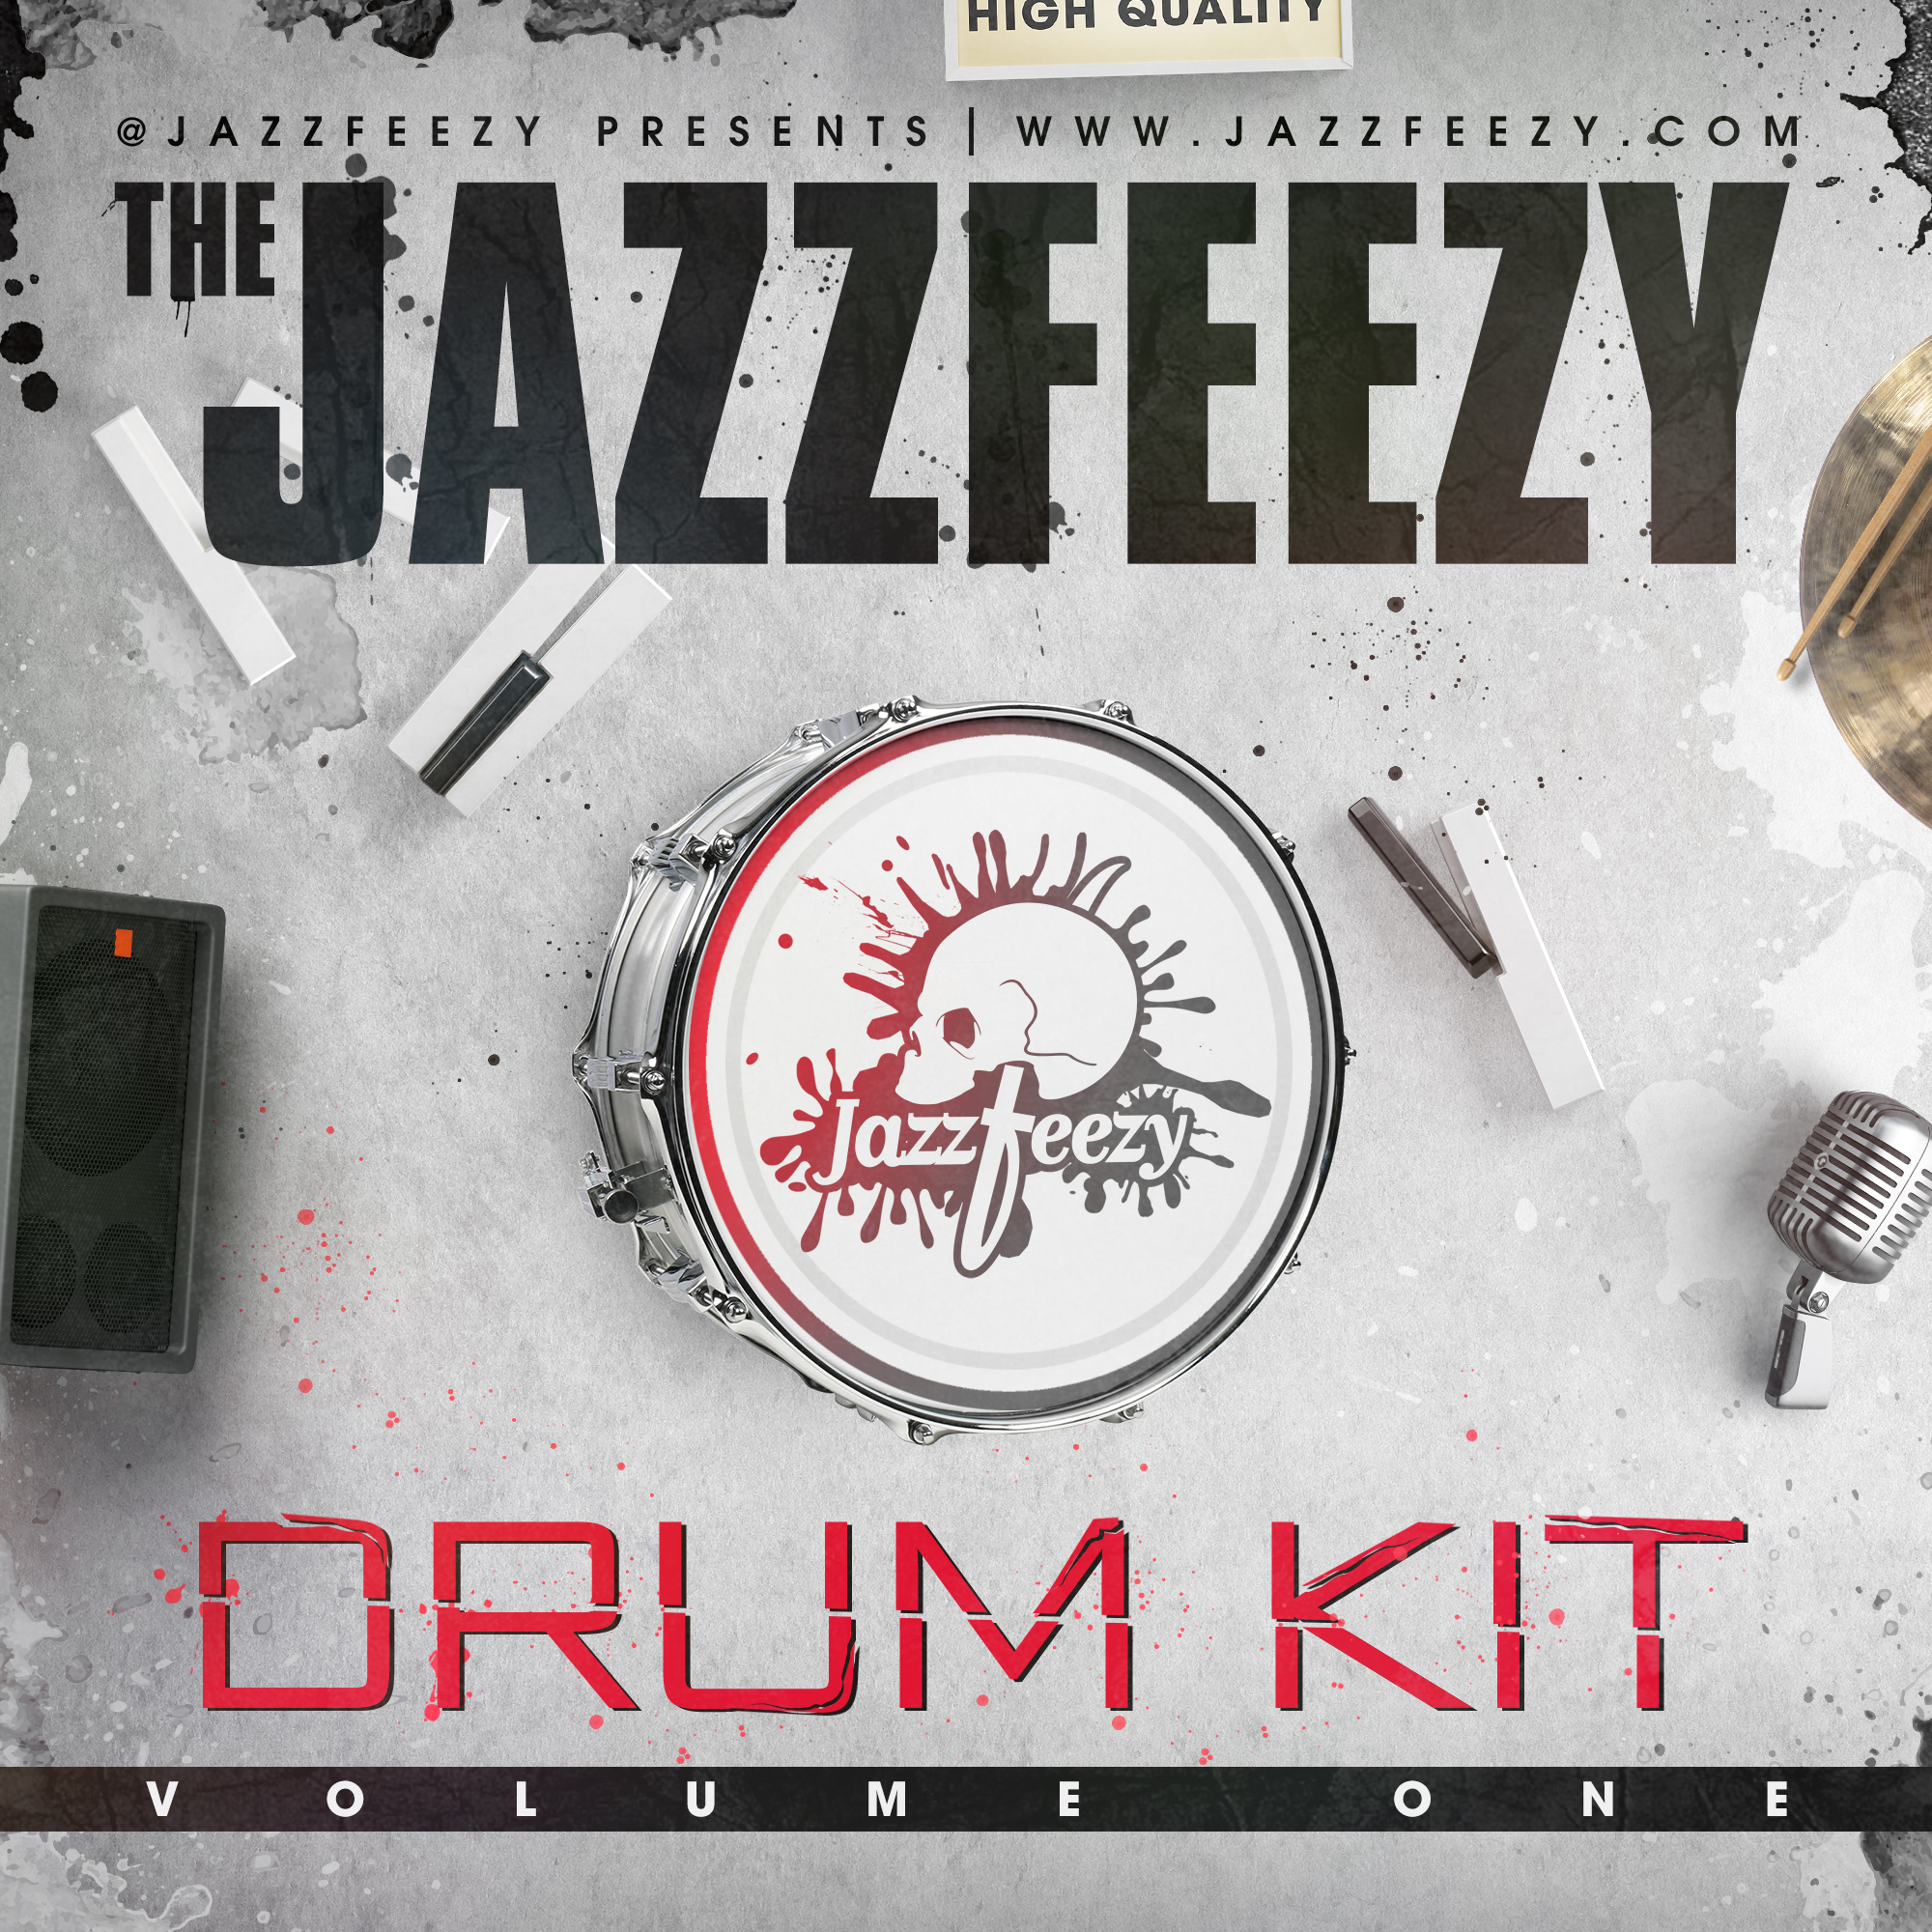 Jazzfeezy Drum Kit vol. 1